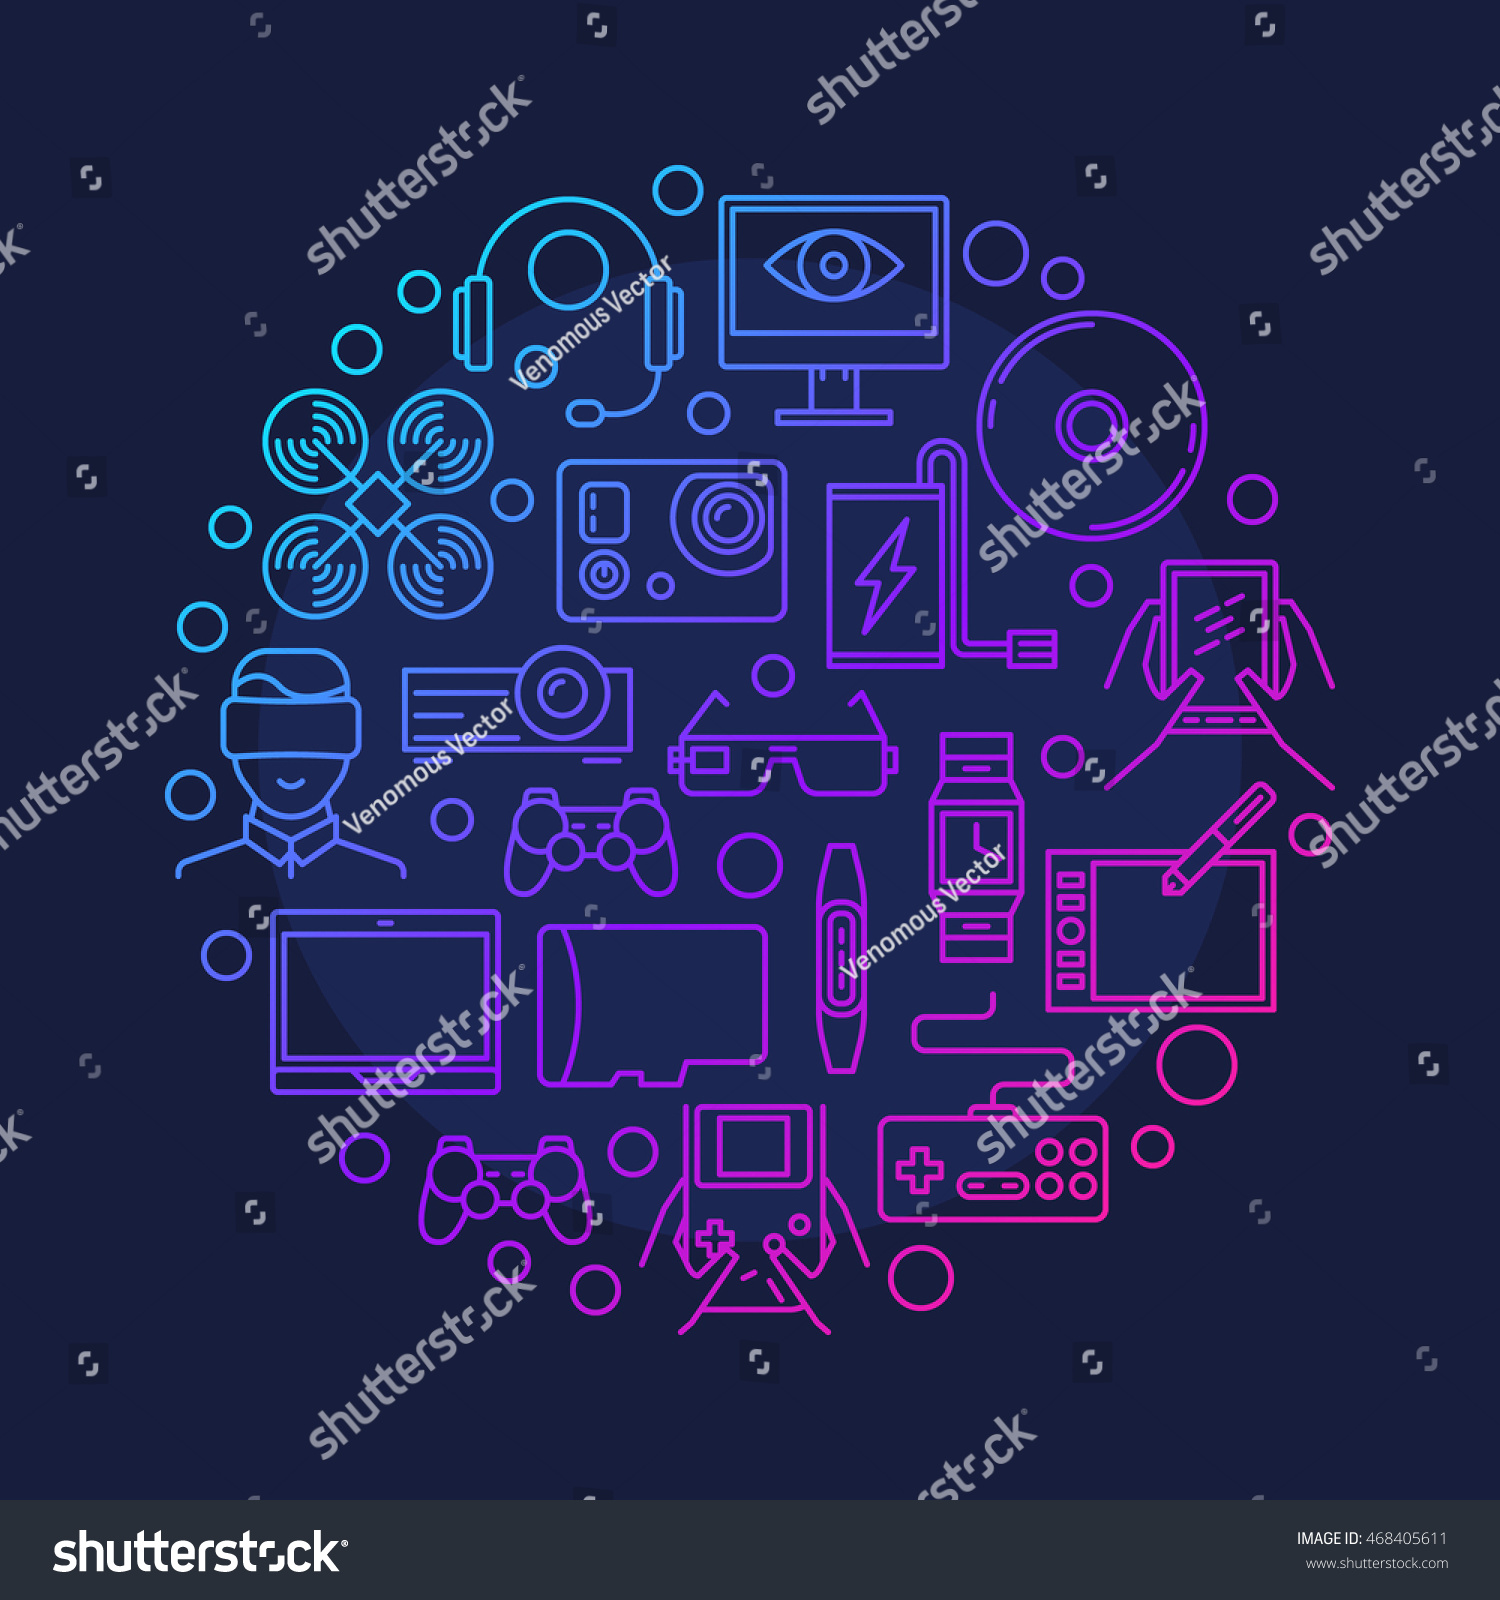 Electronic Devices Gadgets Symbol Vector Round Stock Royalty Block Diagram Of Craft Electronics And Colorful Outline Gadget Sign On Dark Blue Background